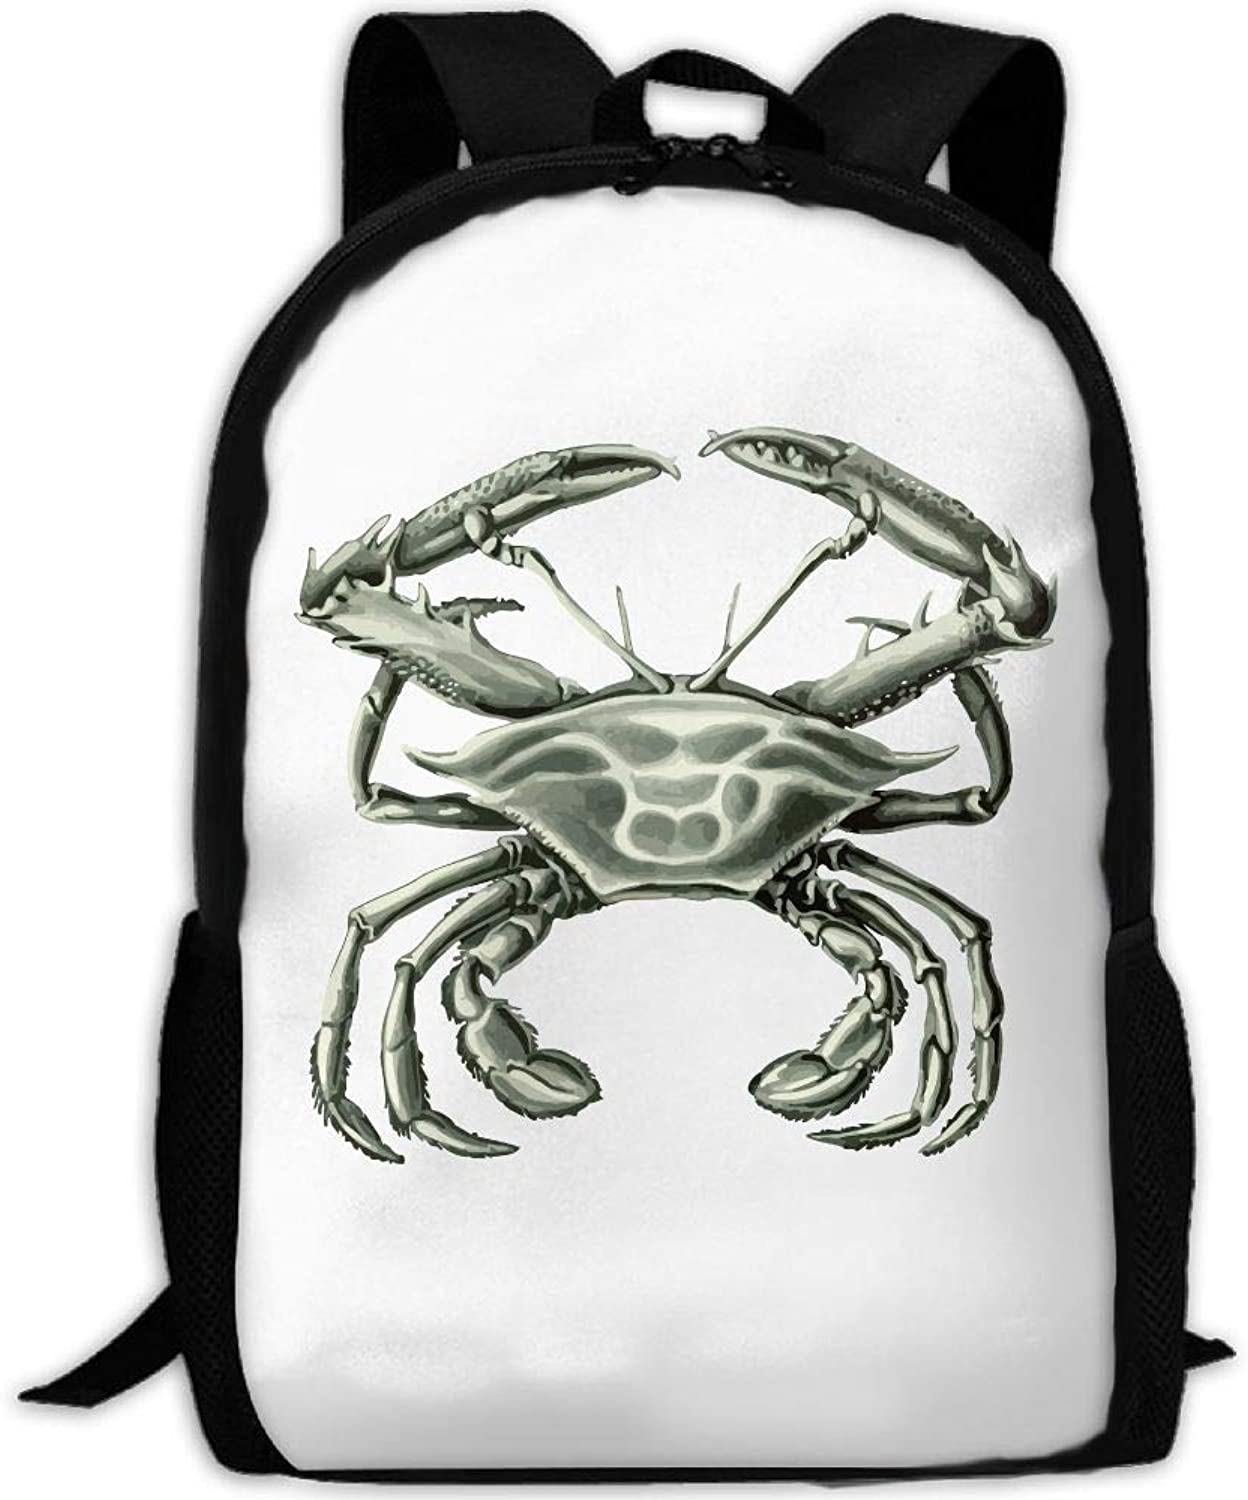 Adult Backpack Cyan Crab College Daypack Oxford Bag Unisex Business Travel Sports Bag with Adjustable Strap